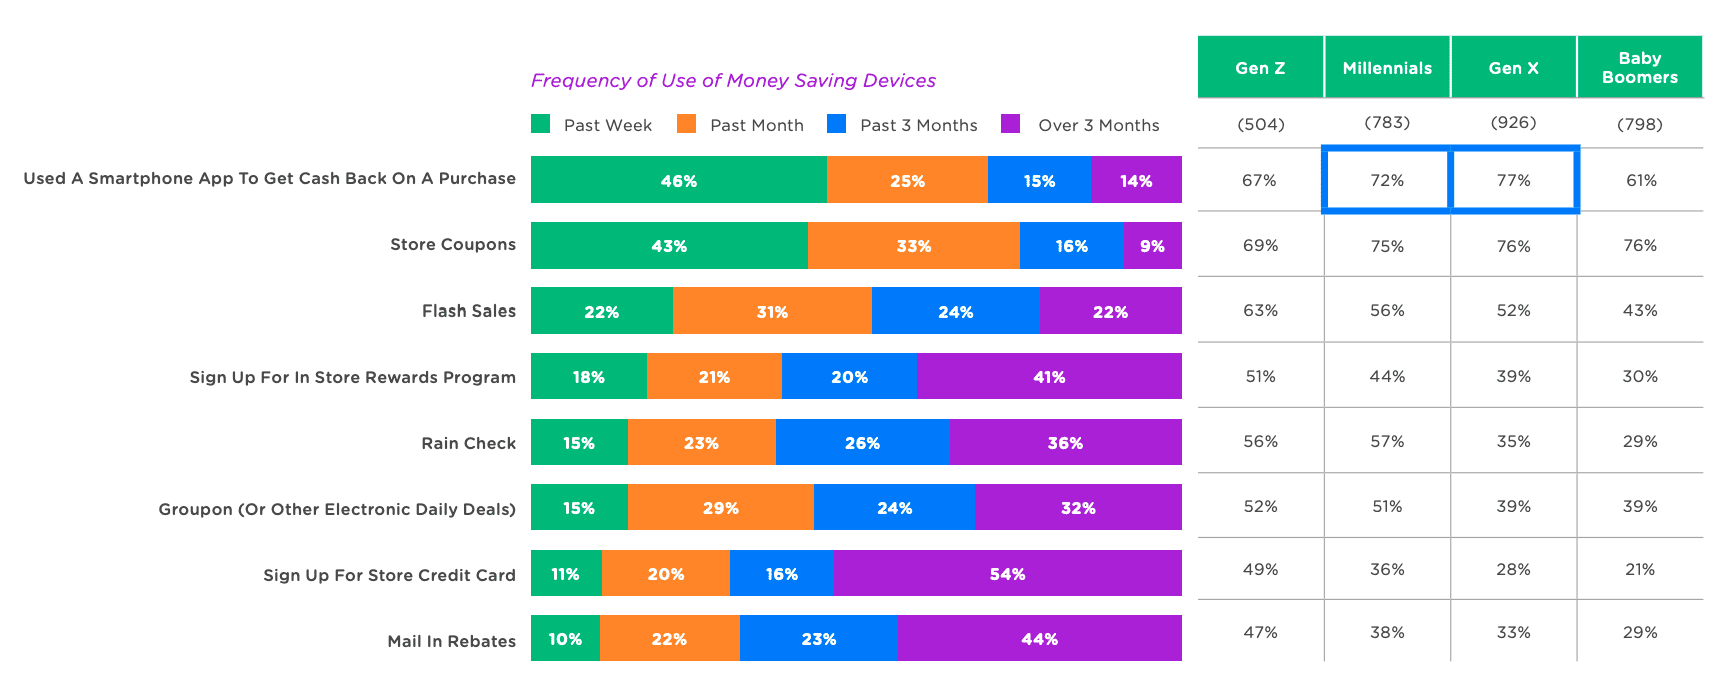 frequency of use of money saving devices